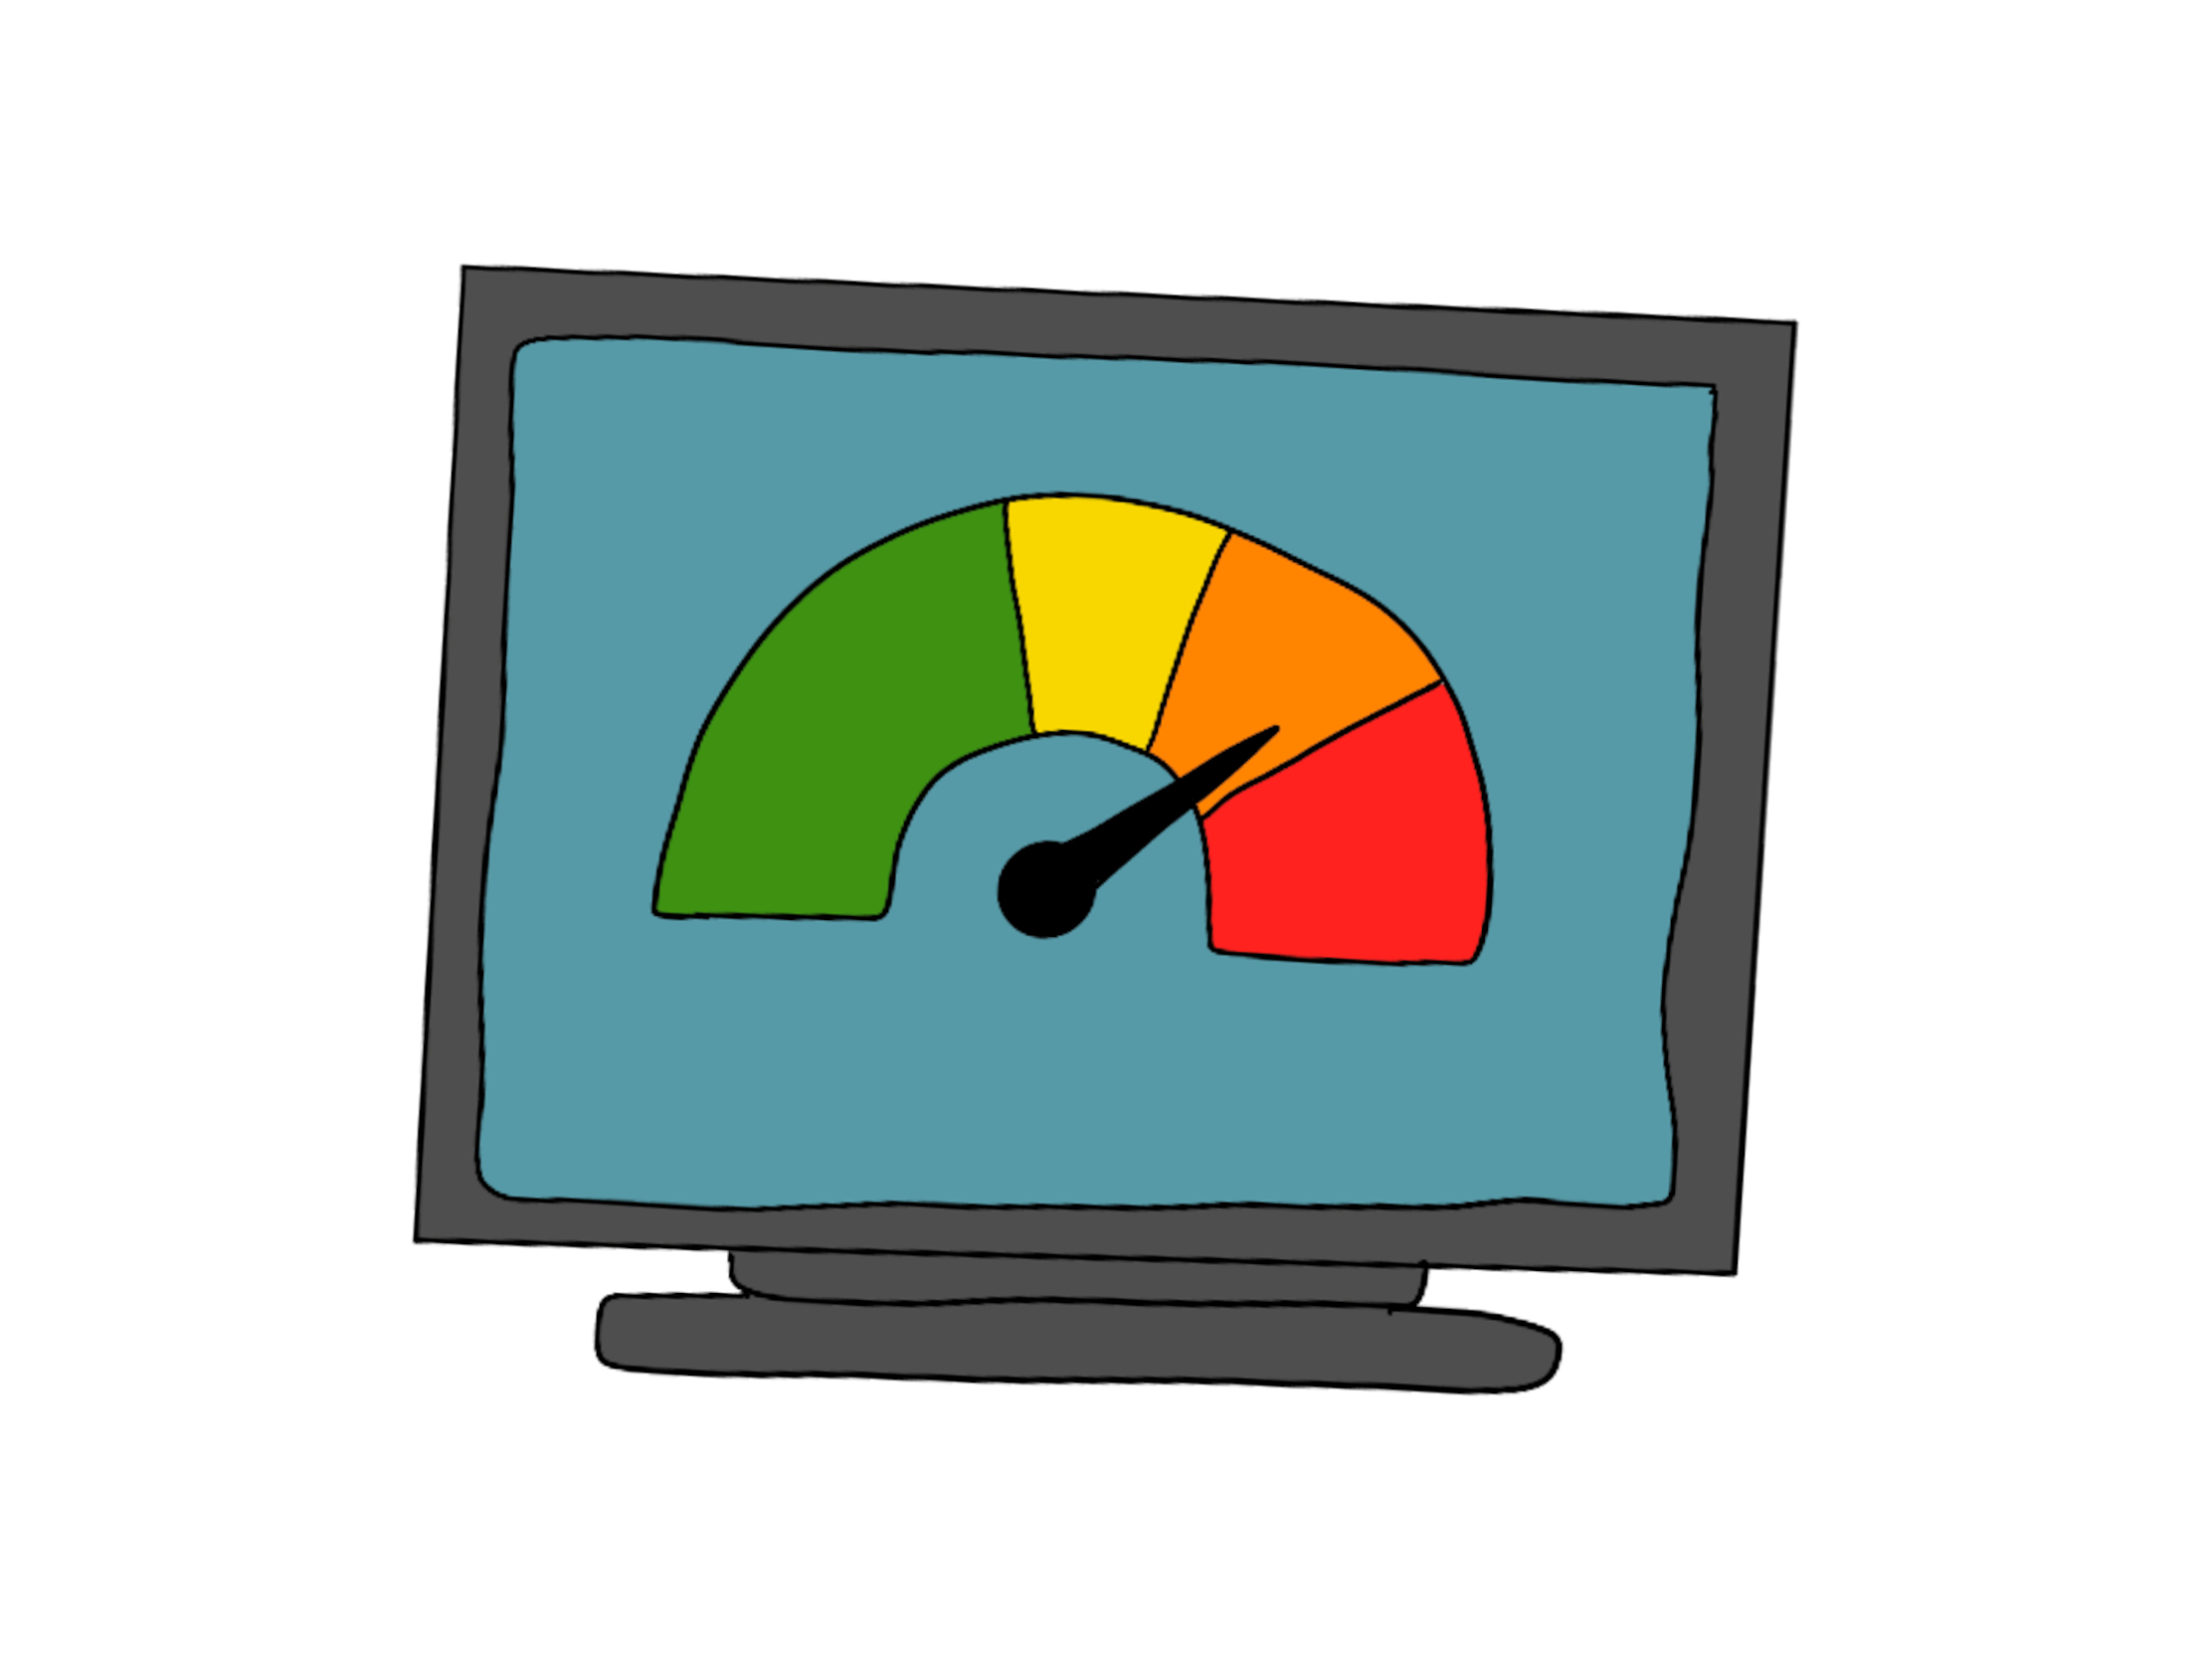 cartoon image of a computer screen showing a ready sign